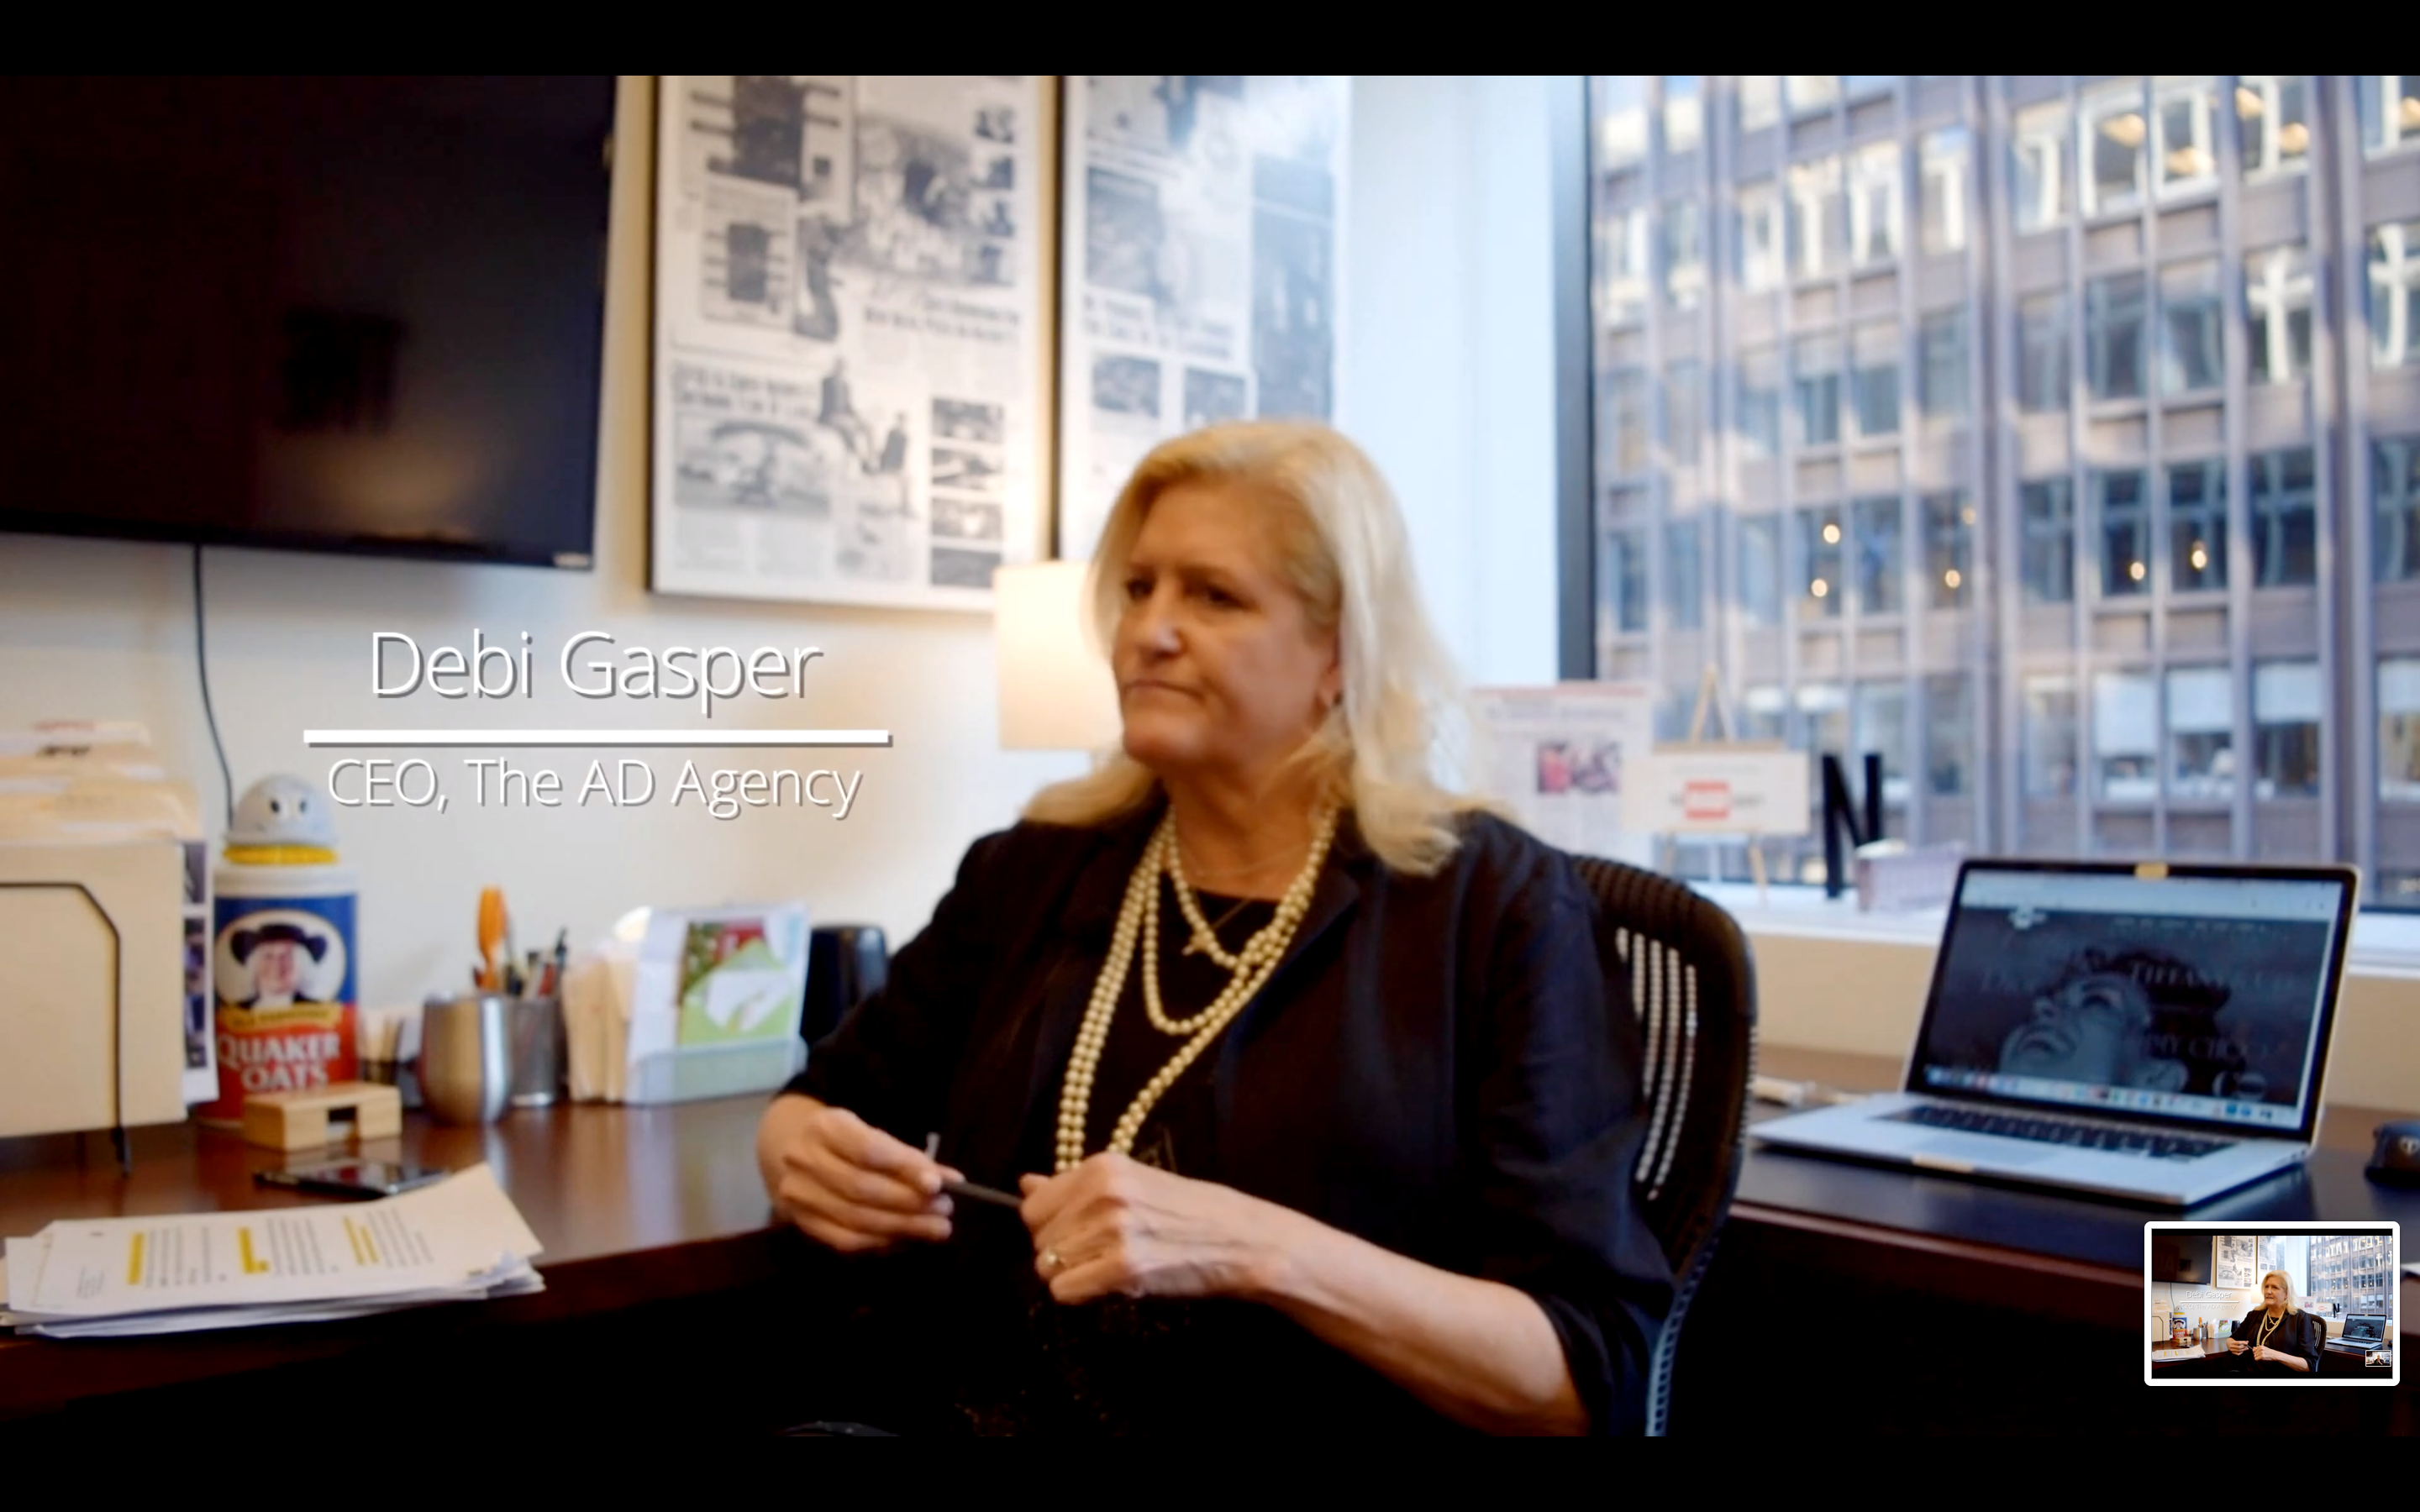 Debi Gasper The AD Agency Washington DC Office